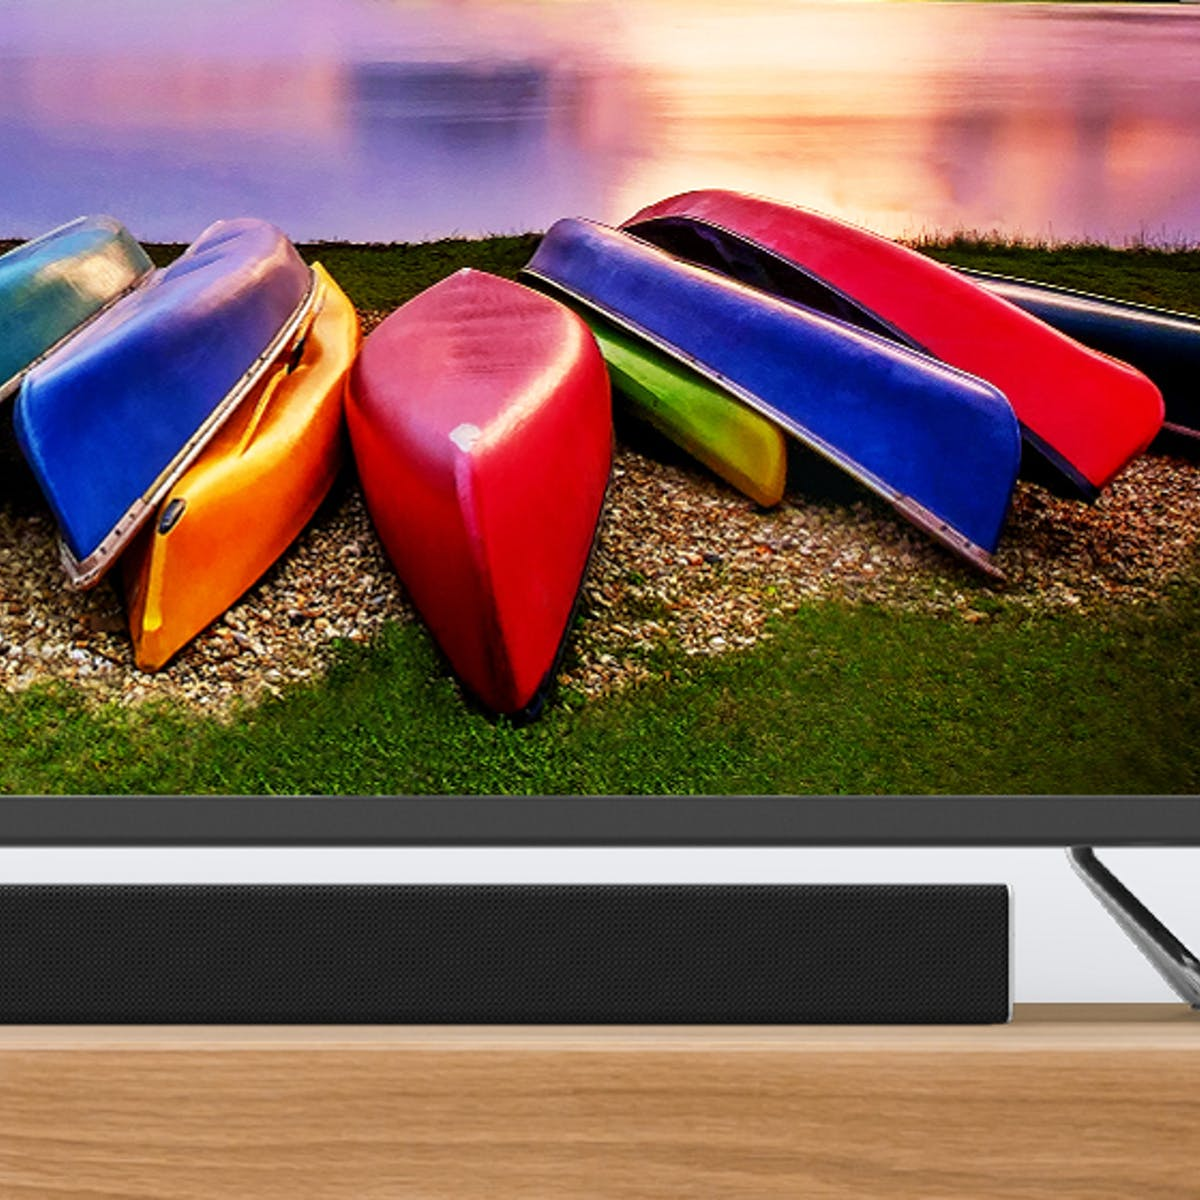 The Sound Bar You've Been Looking For